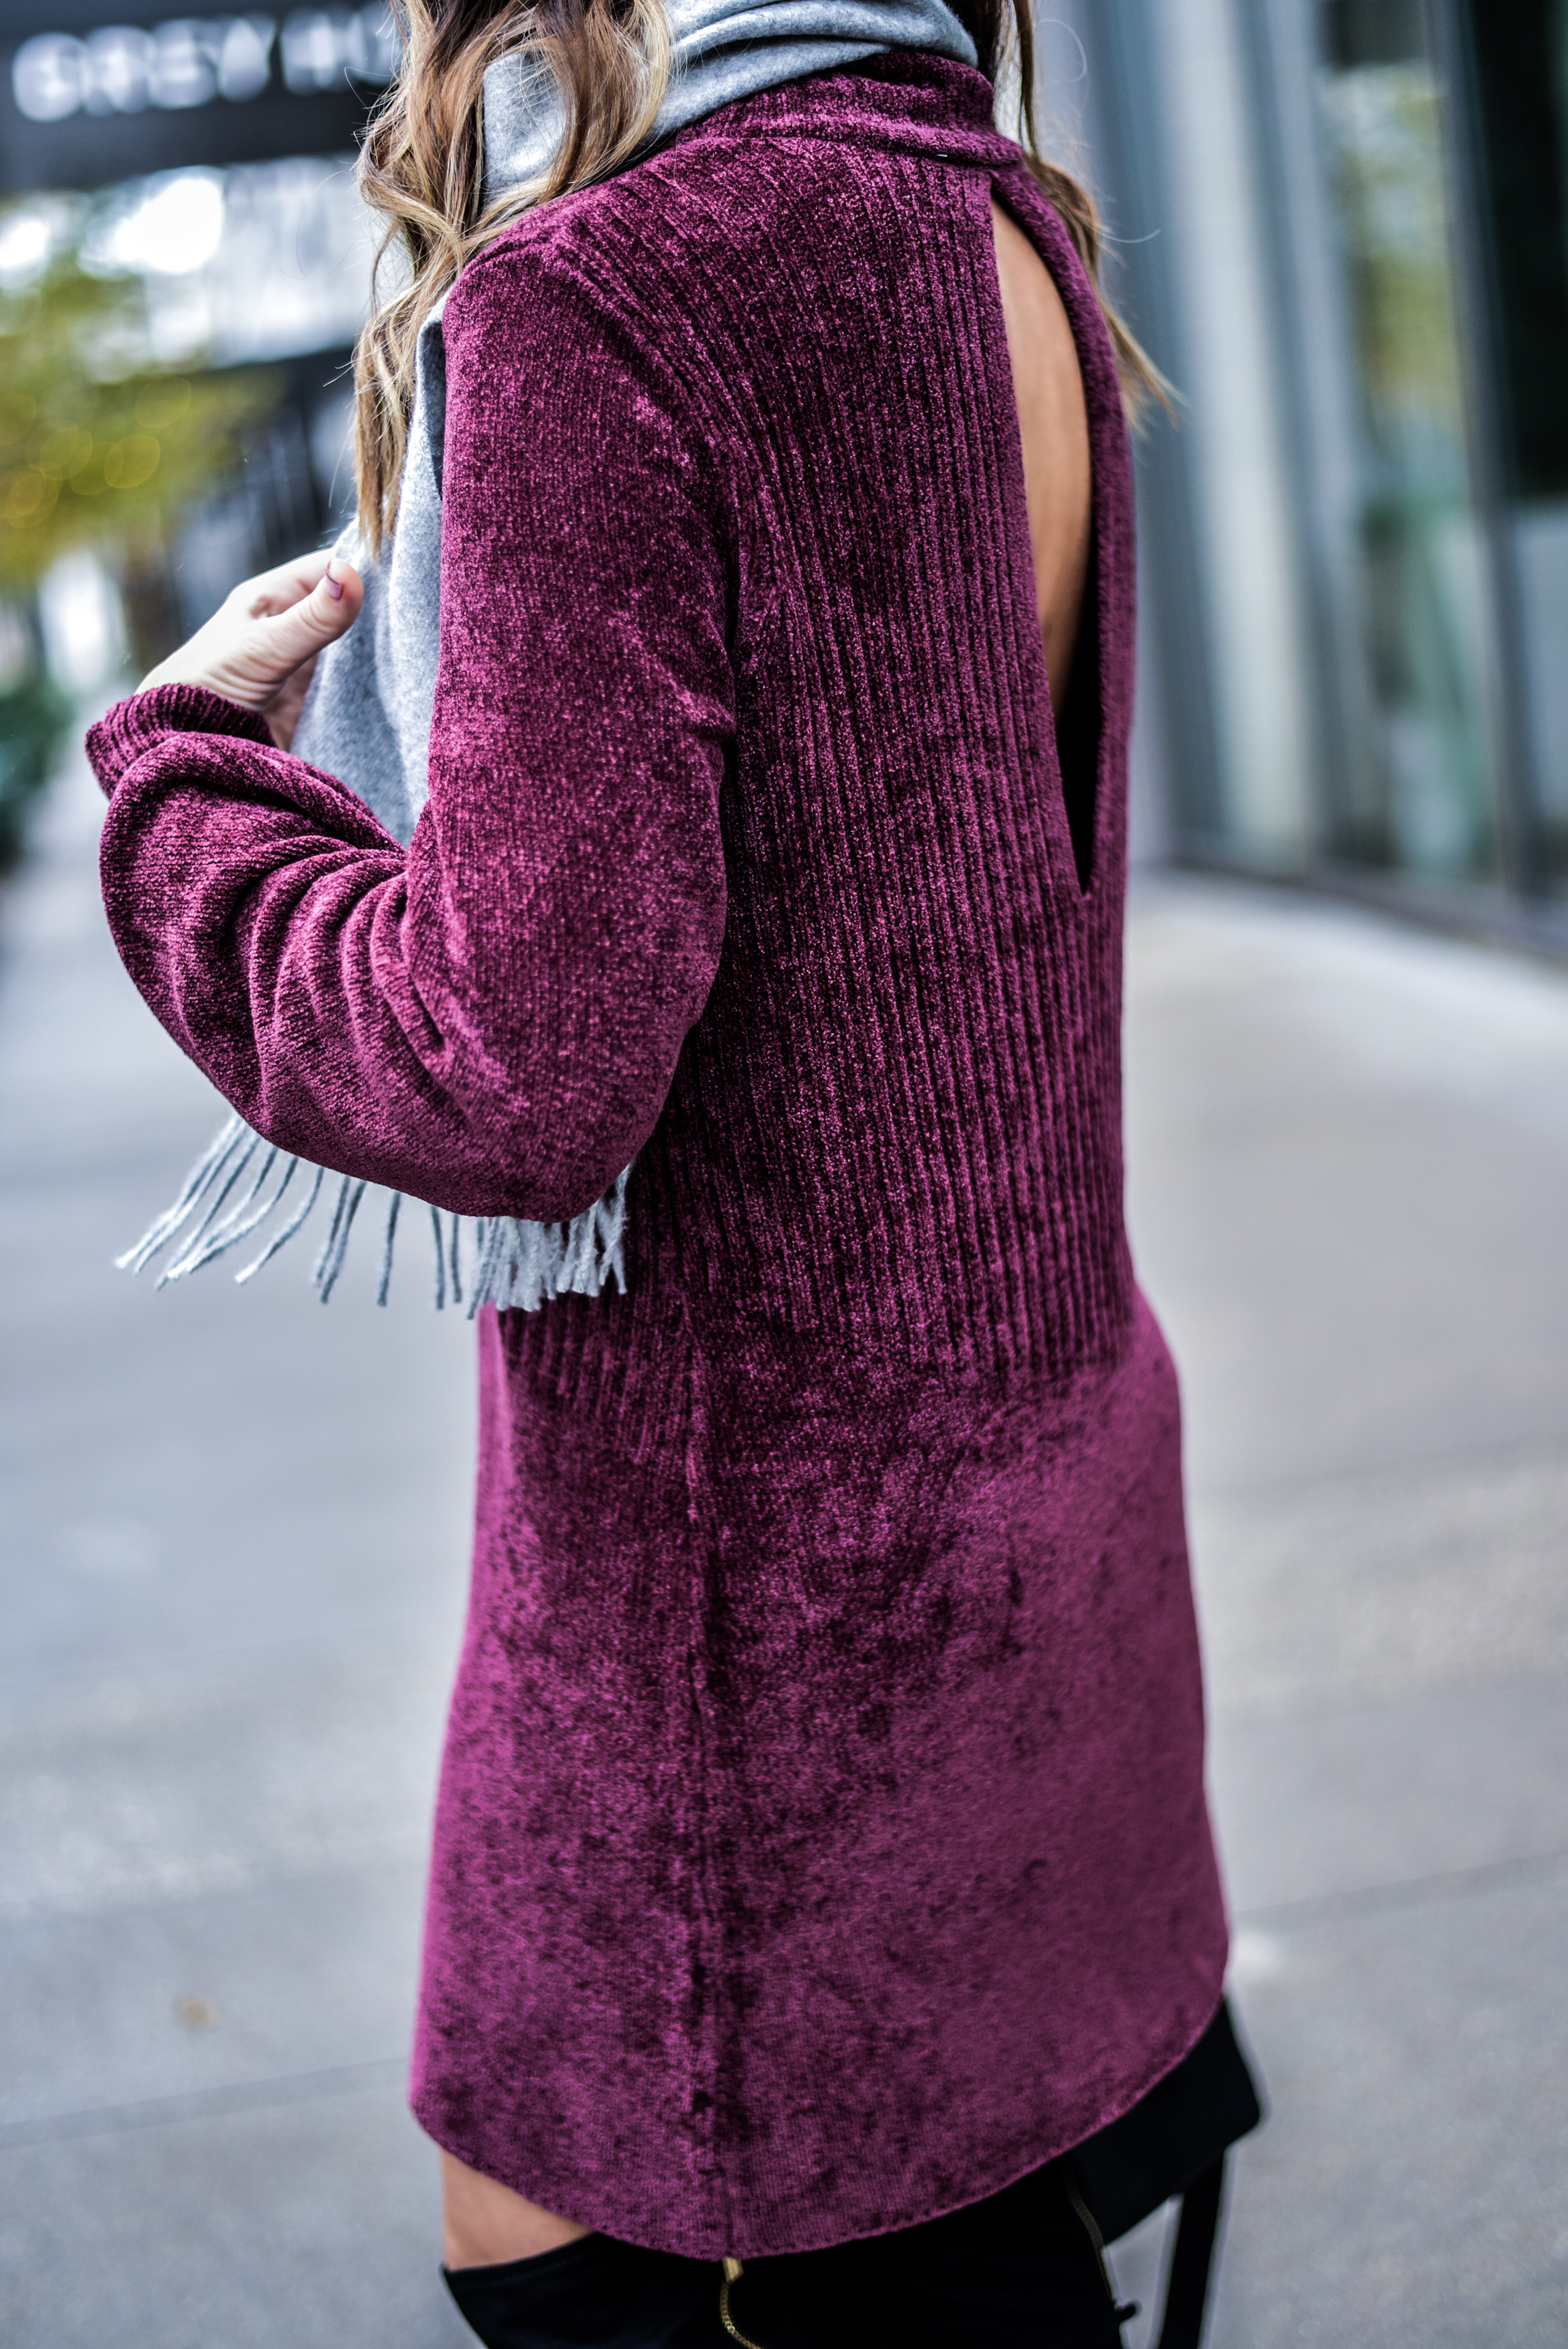 Houston style blogger Tiffany Jais wearing a Free People dress with black over the knee boots and a fringe scarf.